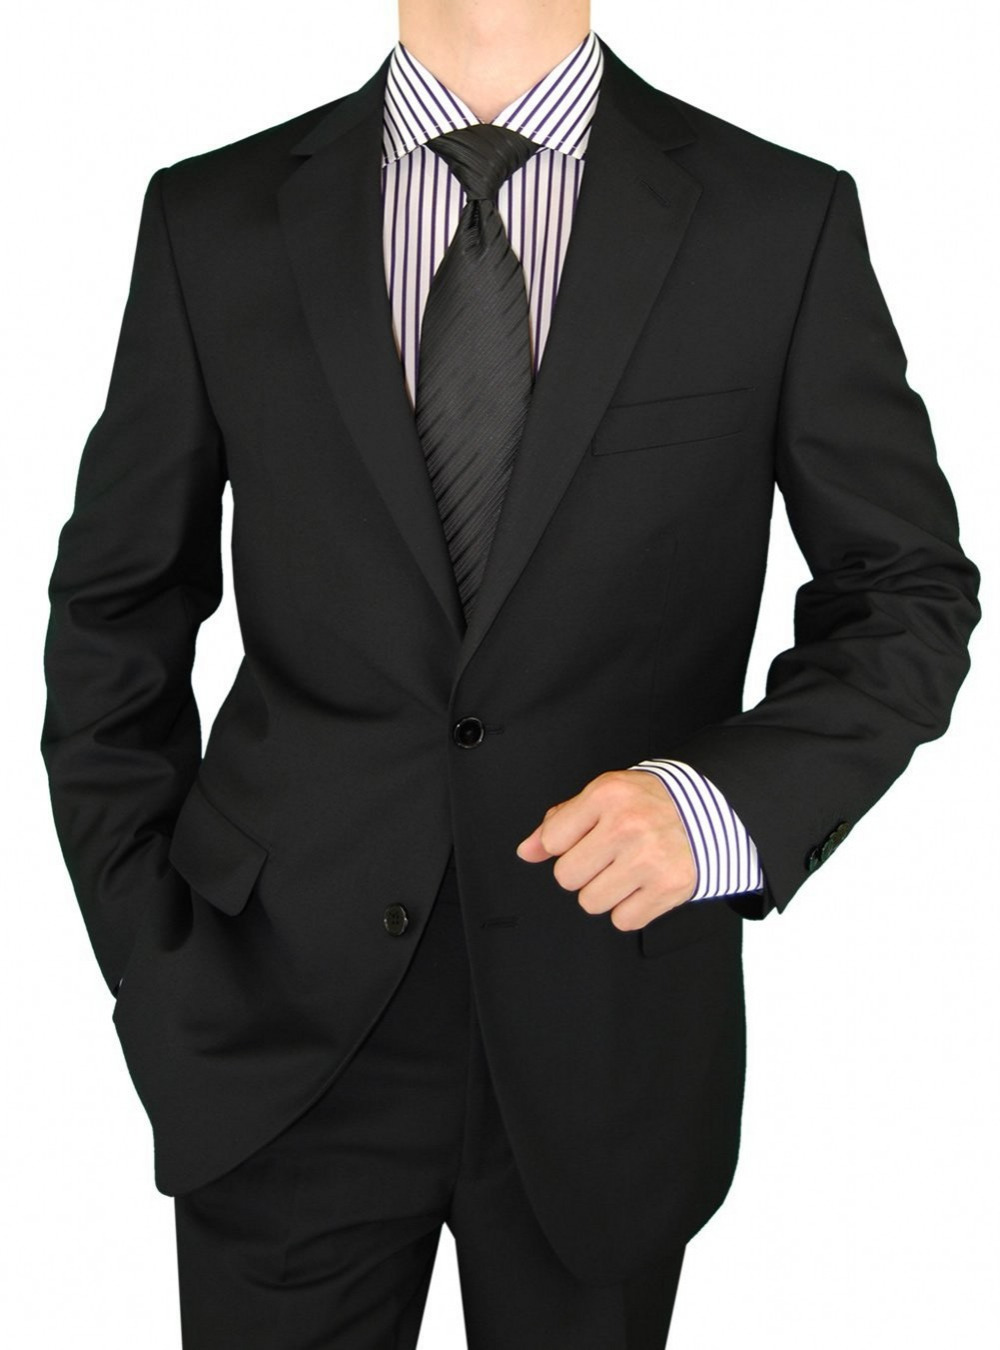 Popular Cheap Quality Suits-Buy Cheap Cheap Quality Suits lots